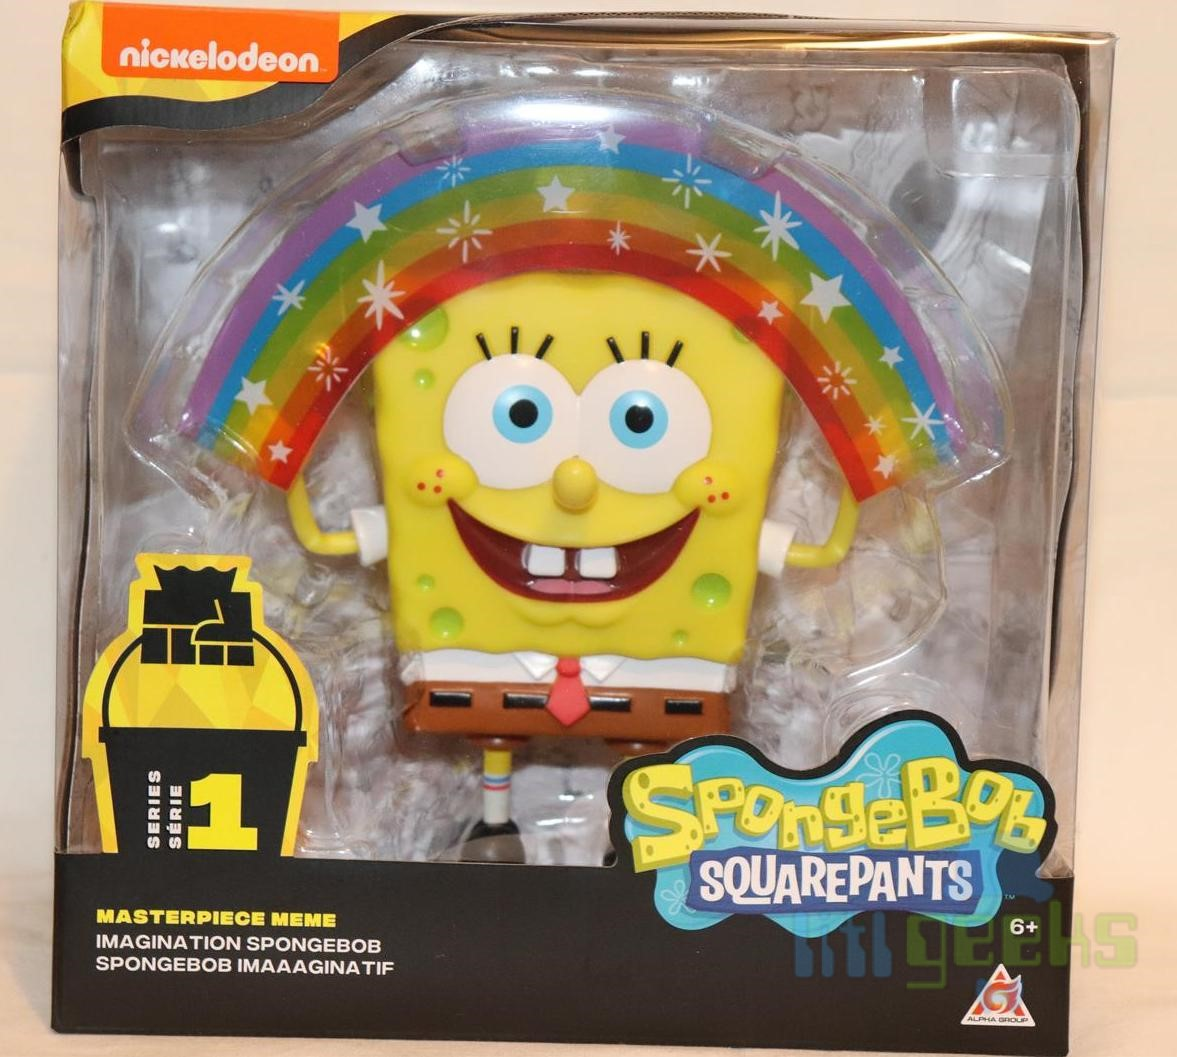 The litlgeeks received these products for free this video and post are for entertainment purposes only this toy is for ages 6 and up